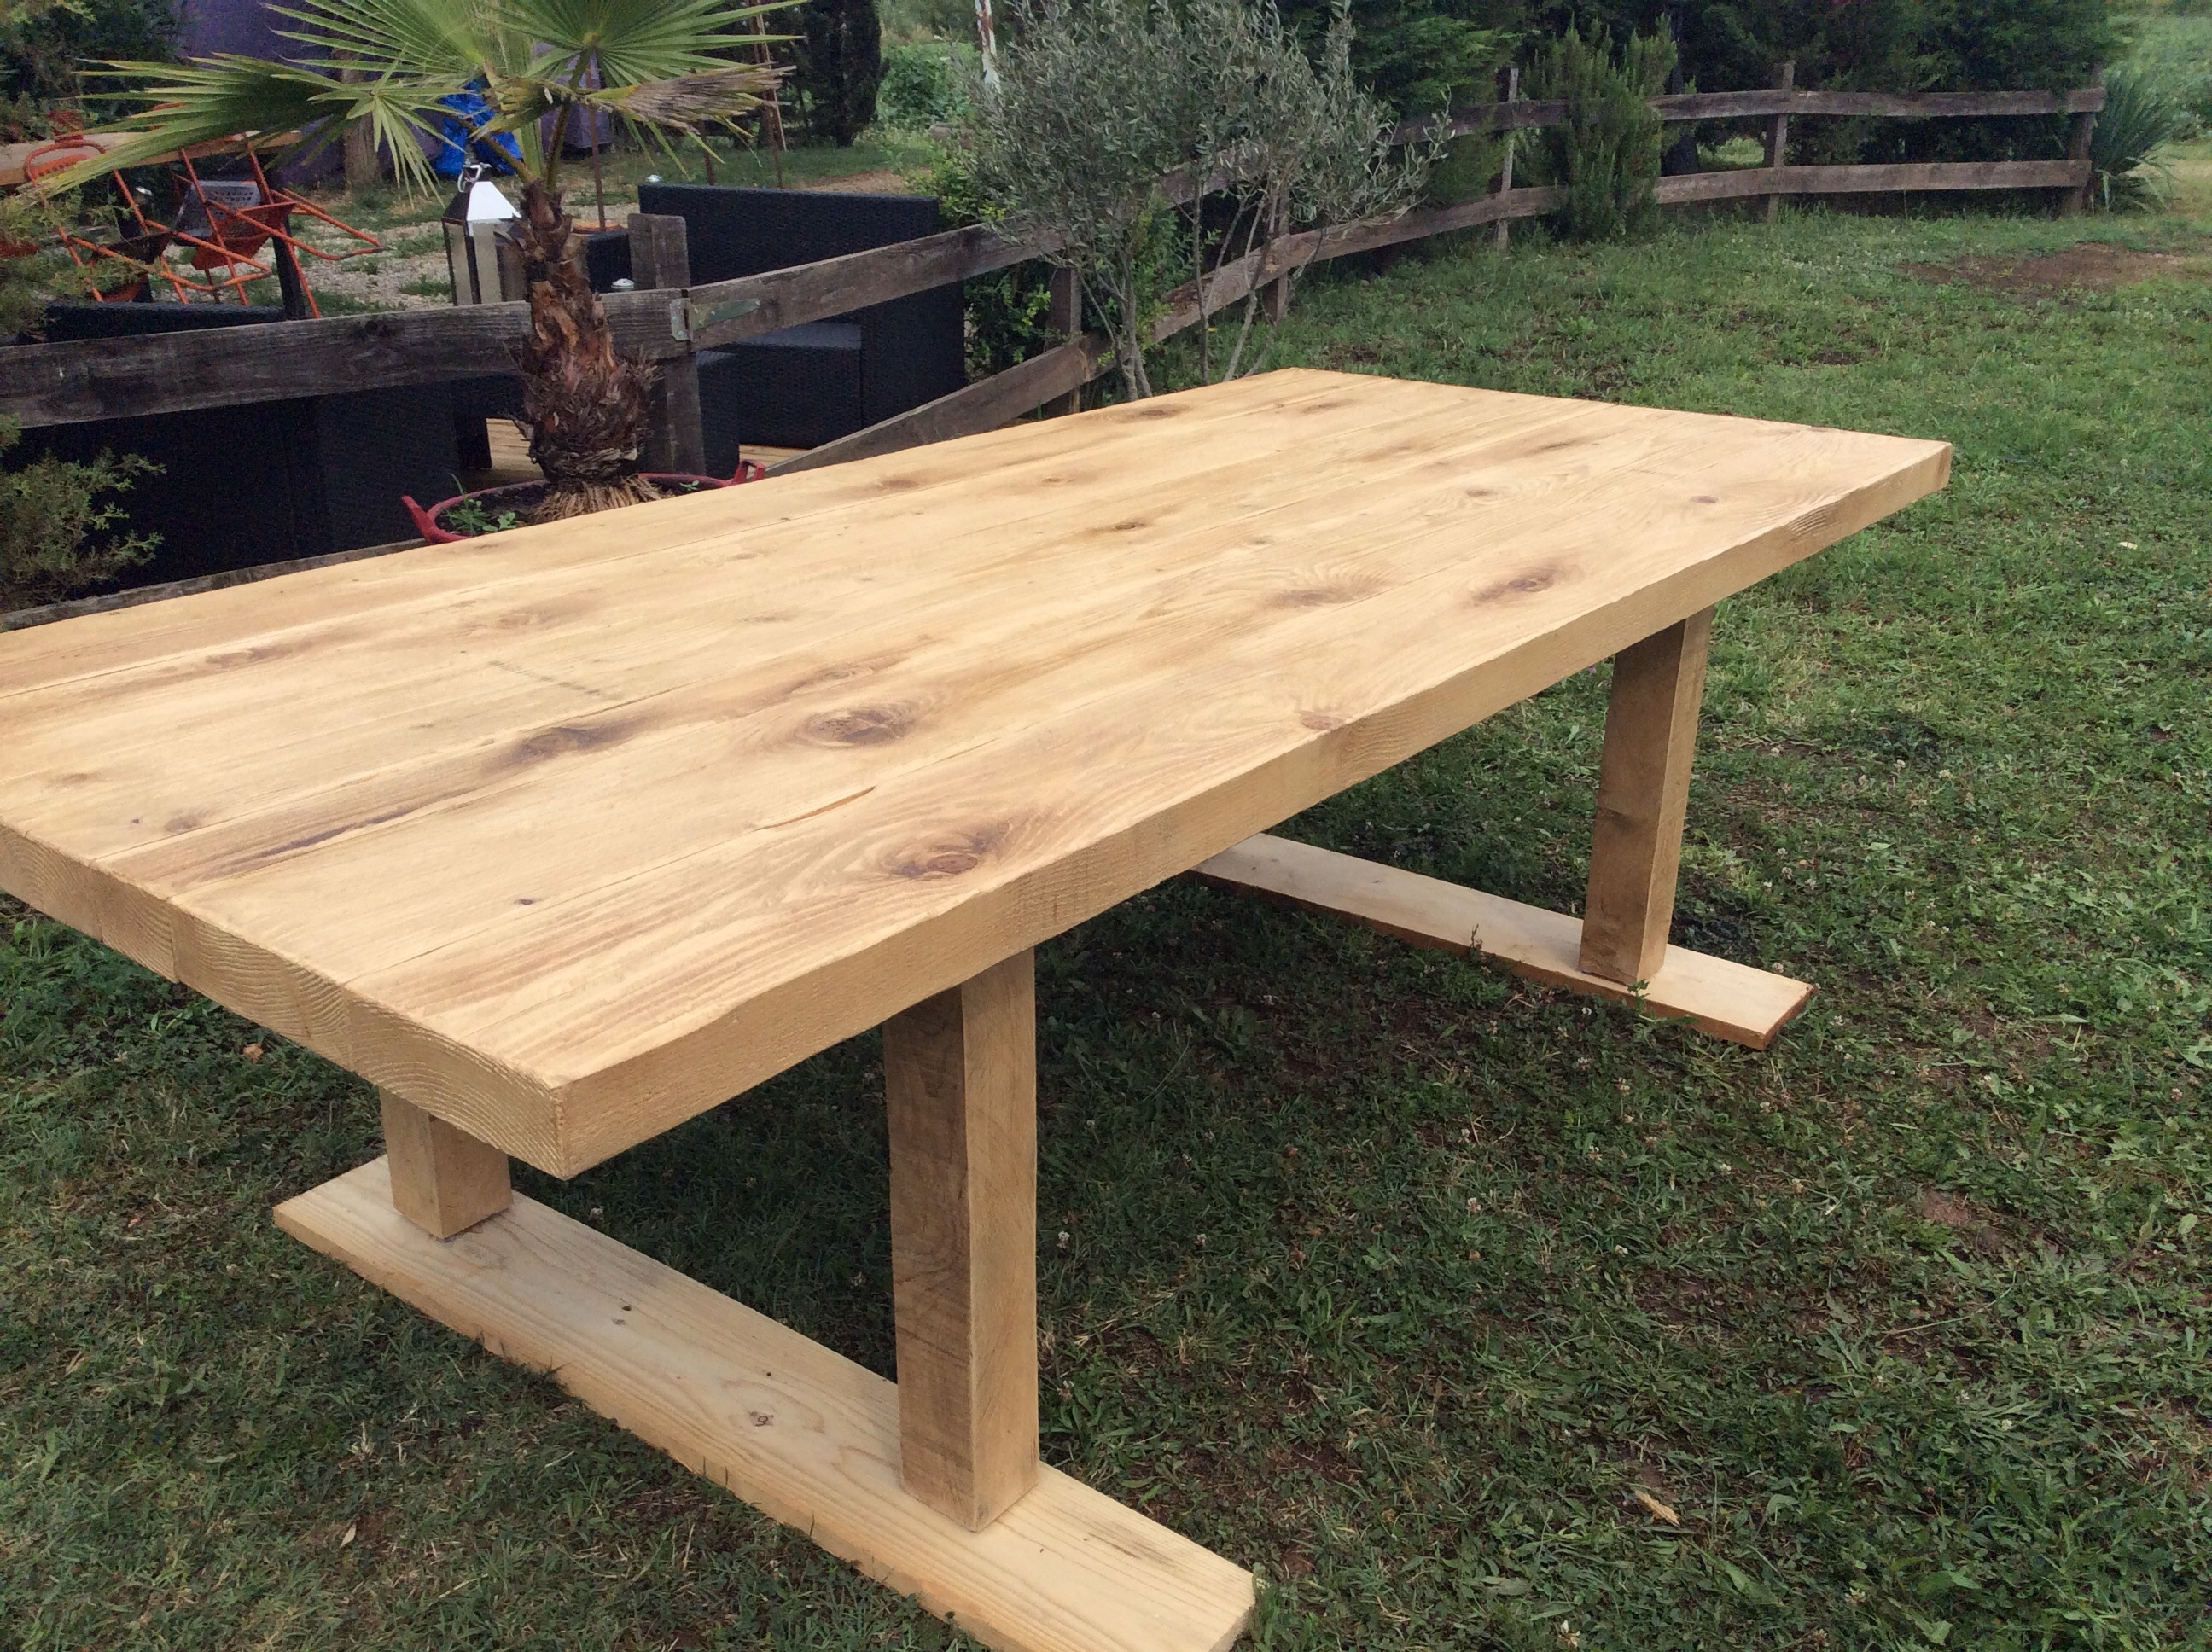 Table bois exterieur meilleures images d 39 inspiration for Table exterieur diy